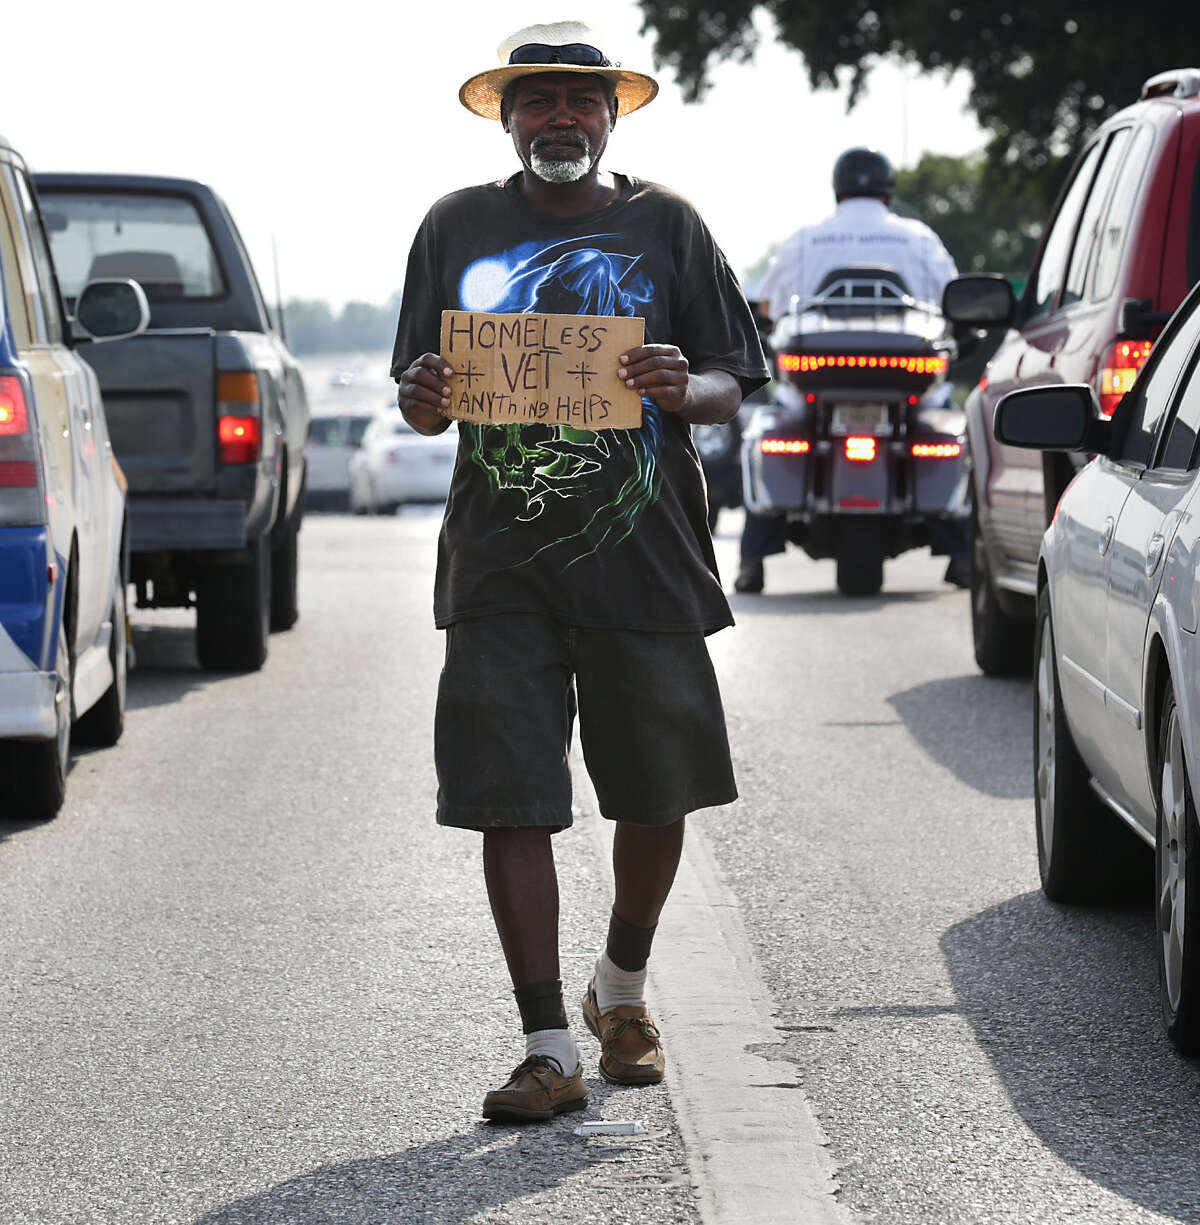 Earl Carrier, 61, who has been homeless for 15 years, panhandles at Loop 410 and Fredericksburg Road.